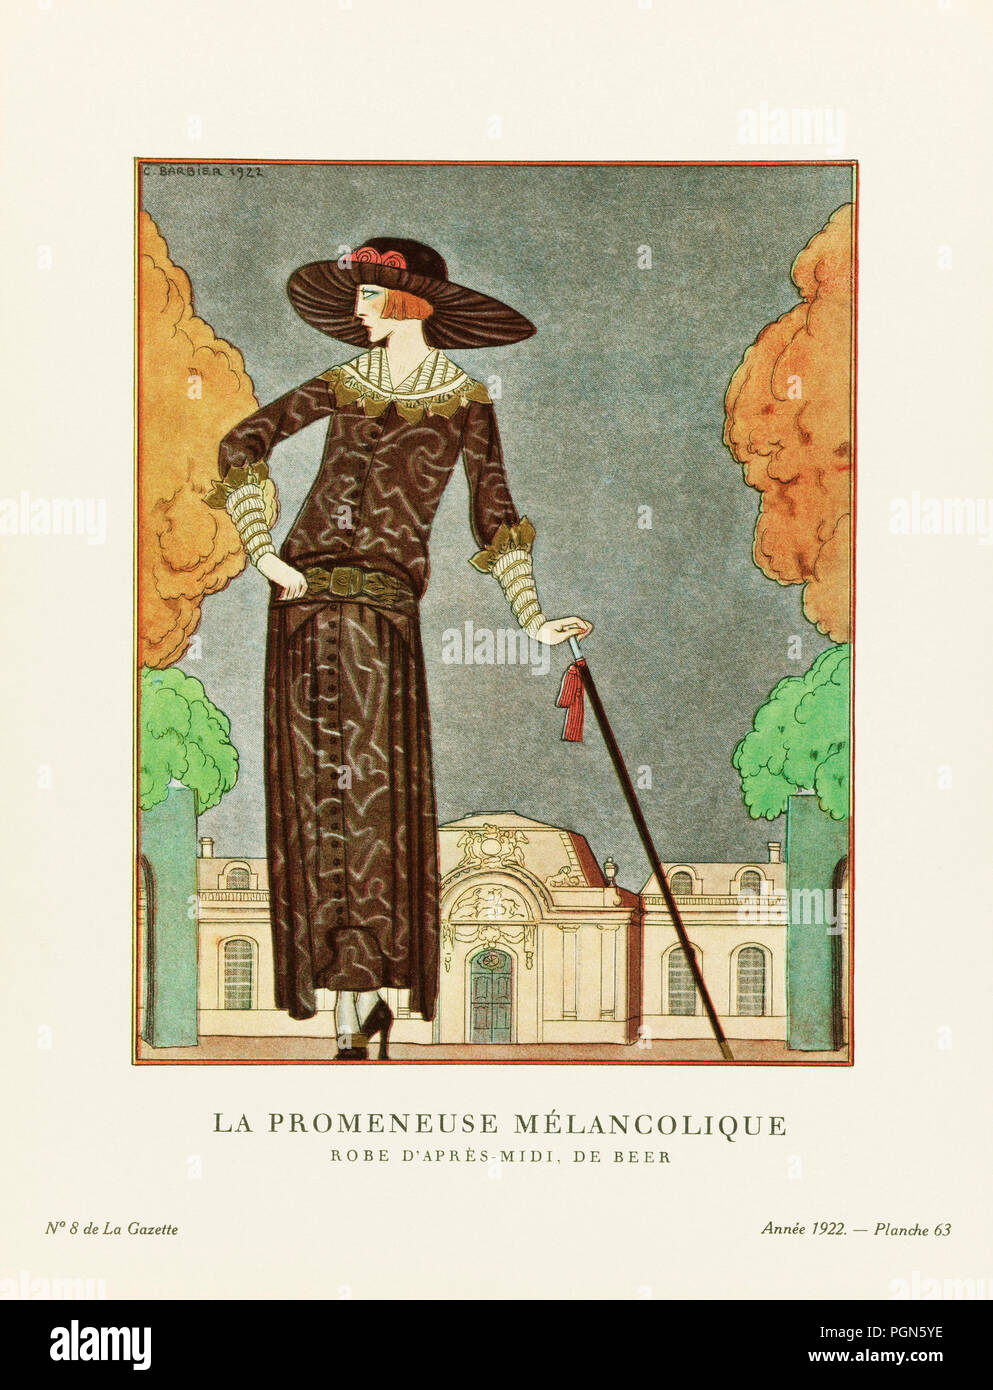 La Promeneuse Mélancolique.  The Melancholy Walker.  Robe d'après-midi, de Beer.  Afternoon dress by Beer.  Art-deco fashion illustration by French artist George Barbier, 1882-1932.  The work was created for the Gazette du Bon Ton, a Parisian fashion magazine published between 1912-1915 and 1919-1925. - Stock Image